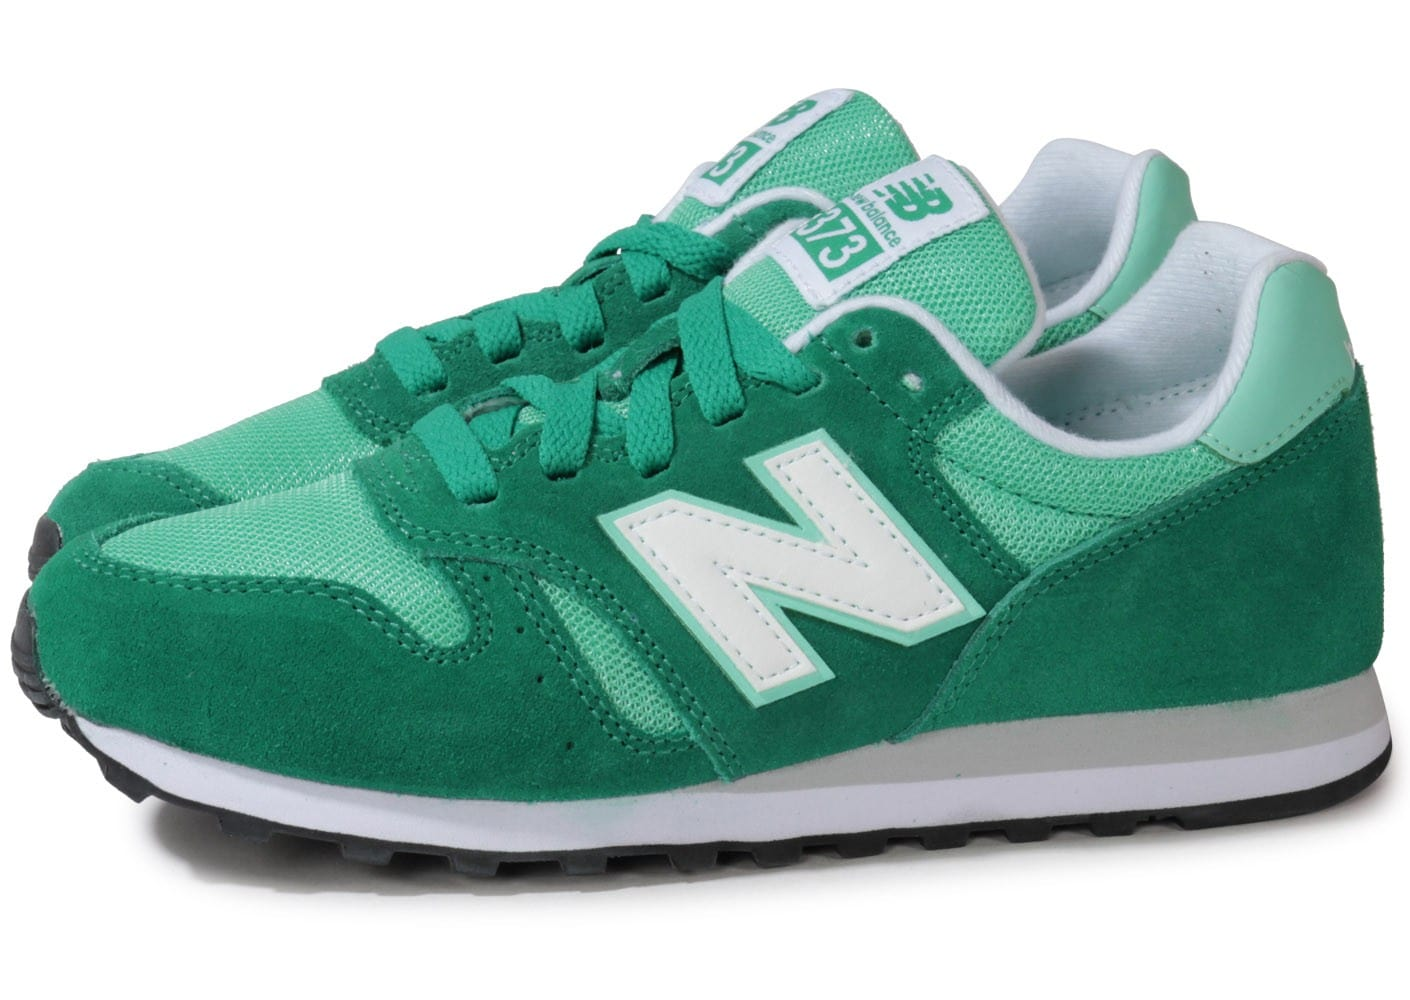 Royaume-Uni disponibilité 5c01d 631cd New Balance Wl373 Smg Frozen Yogurt Verte - Chaussures ...